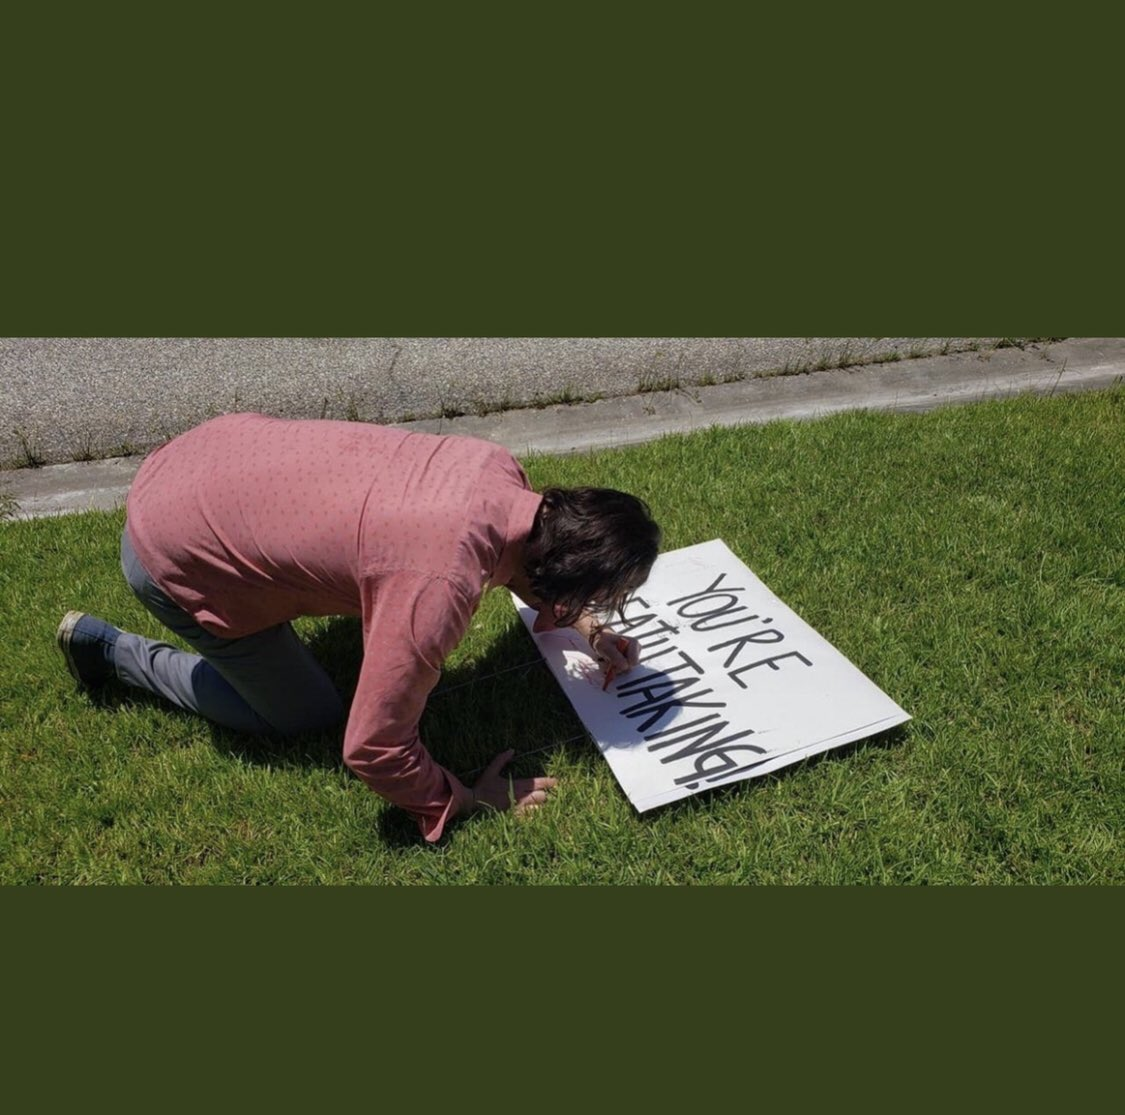 So yesterday this sign was out on a lawn on the way to set. Keanu jumped out of the car and did this.